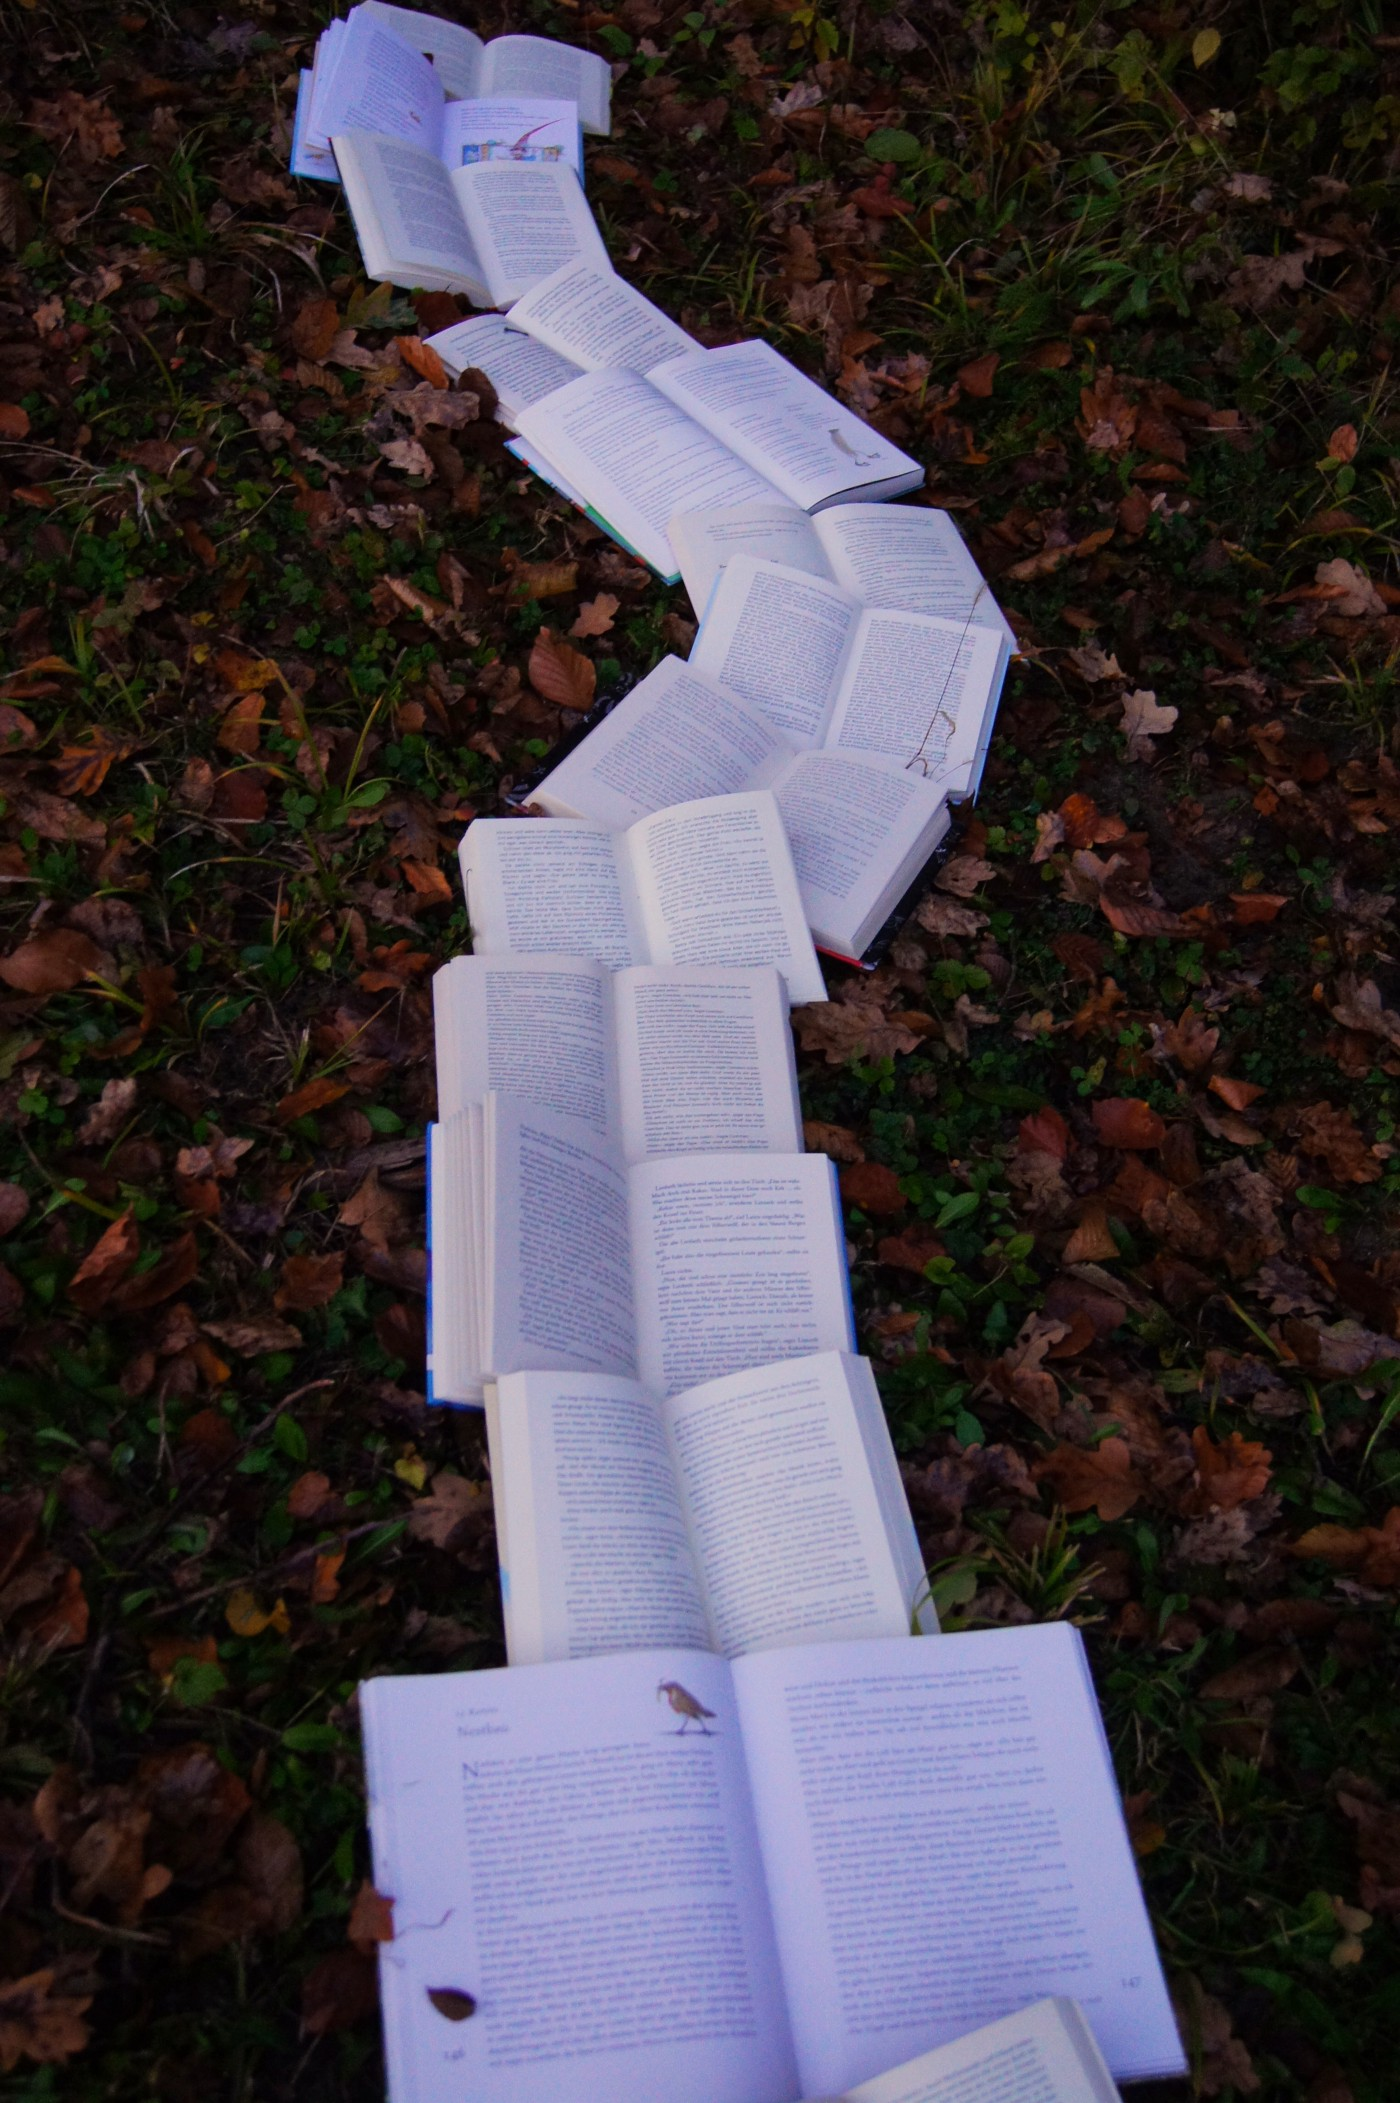 A trail of open books